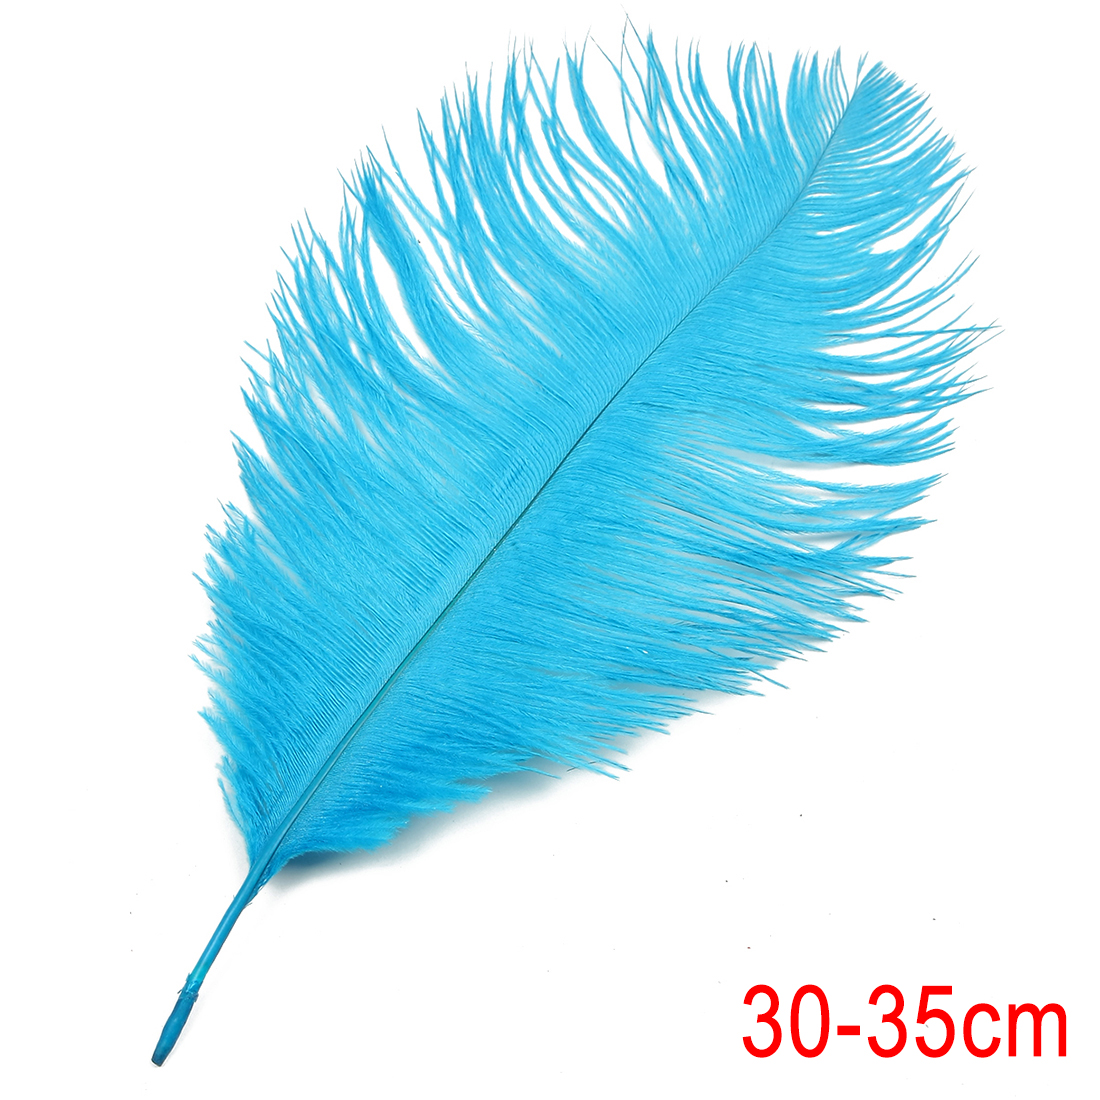 12-14inch / 30-35cm Ostrich Feather for Wedding Party Decoration Blue